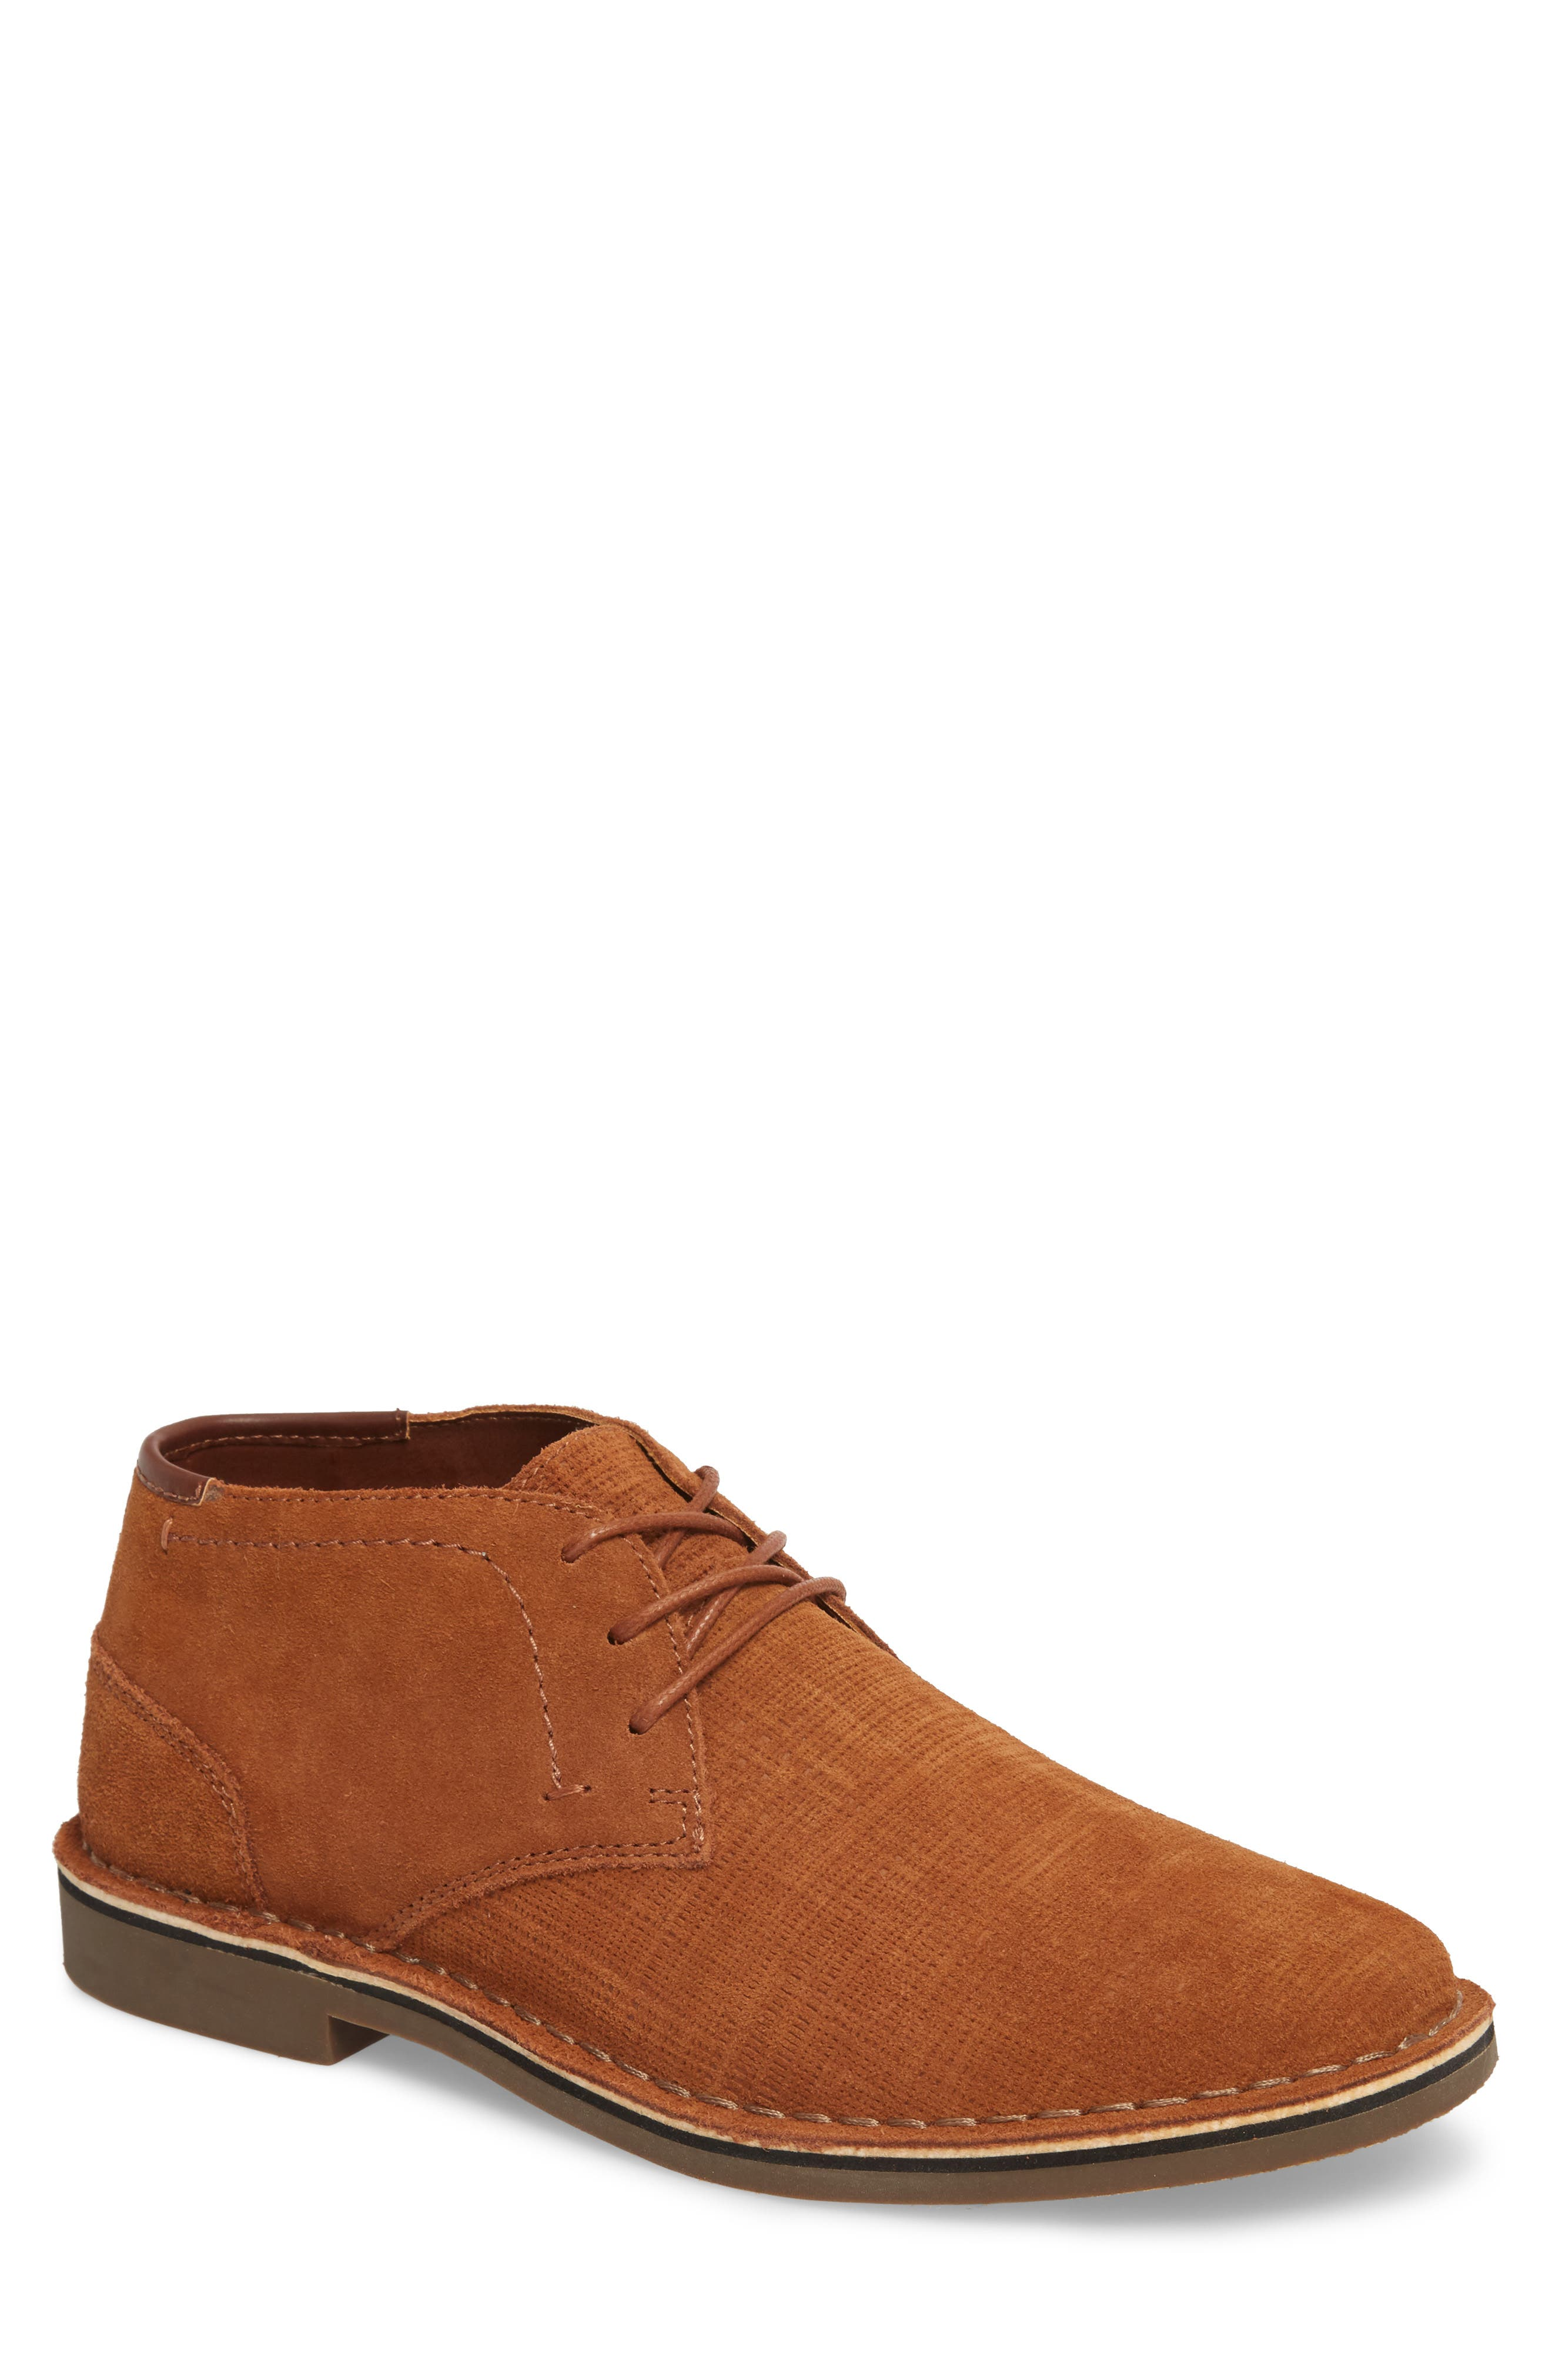 Desert Sun Textured Chukka Boot,                             Main thumbnail 1, color,